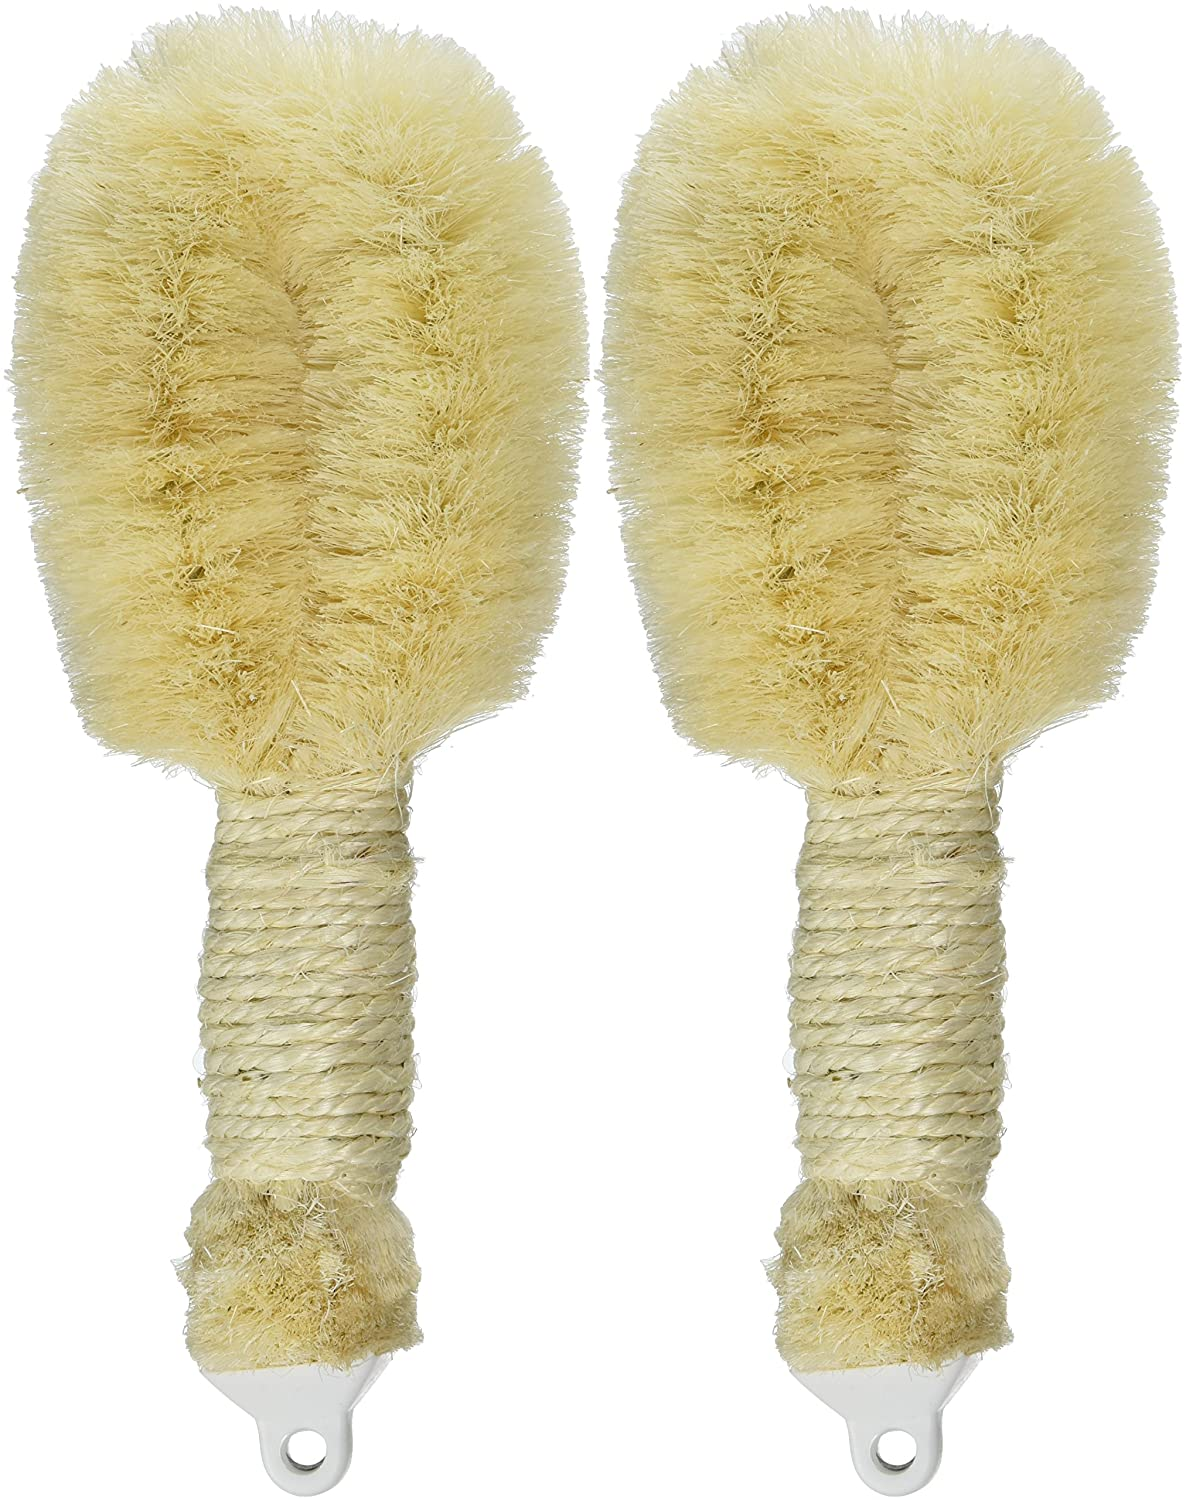 Nippon regular agency Earth Therapeutics Purest Palm Brush NEW 2 Count Body